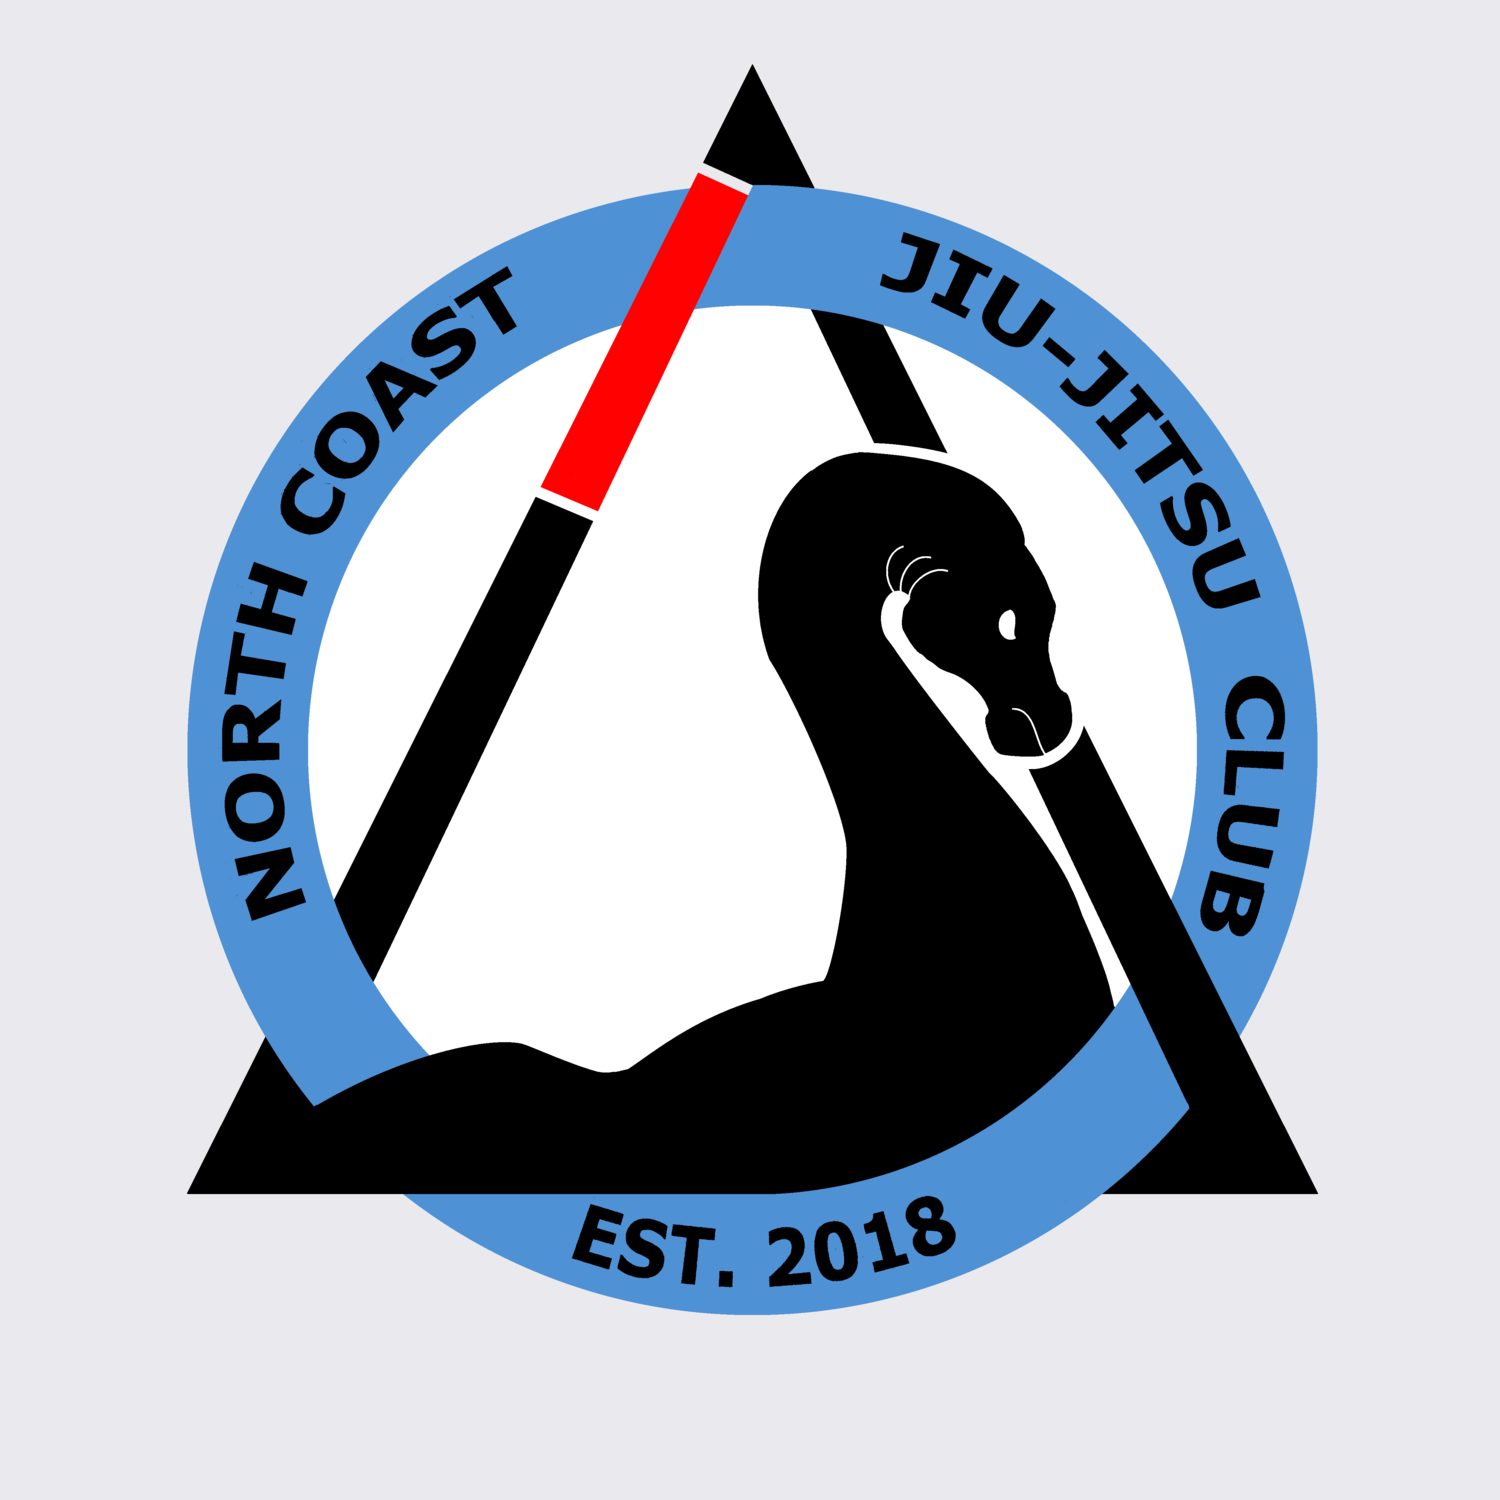 North Coast Jiu-Jitsu Club